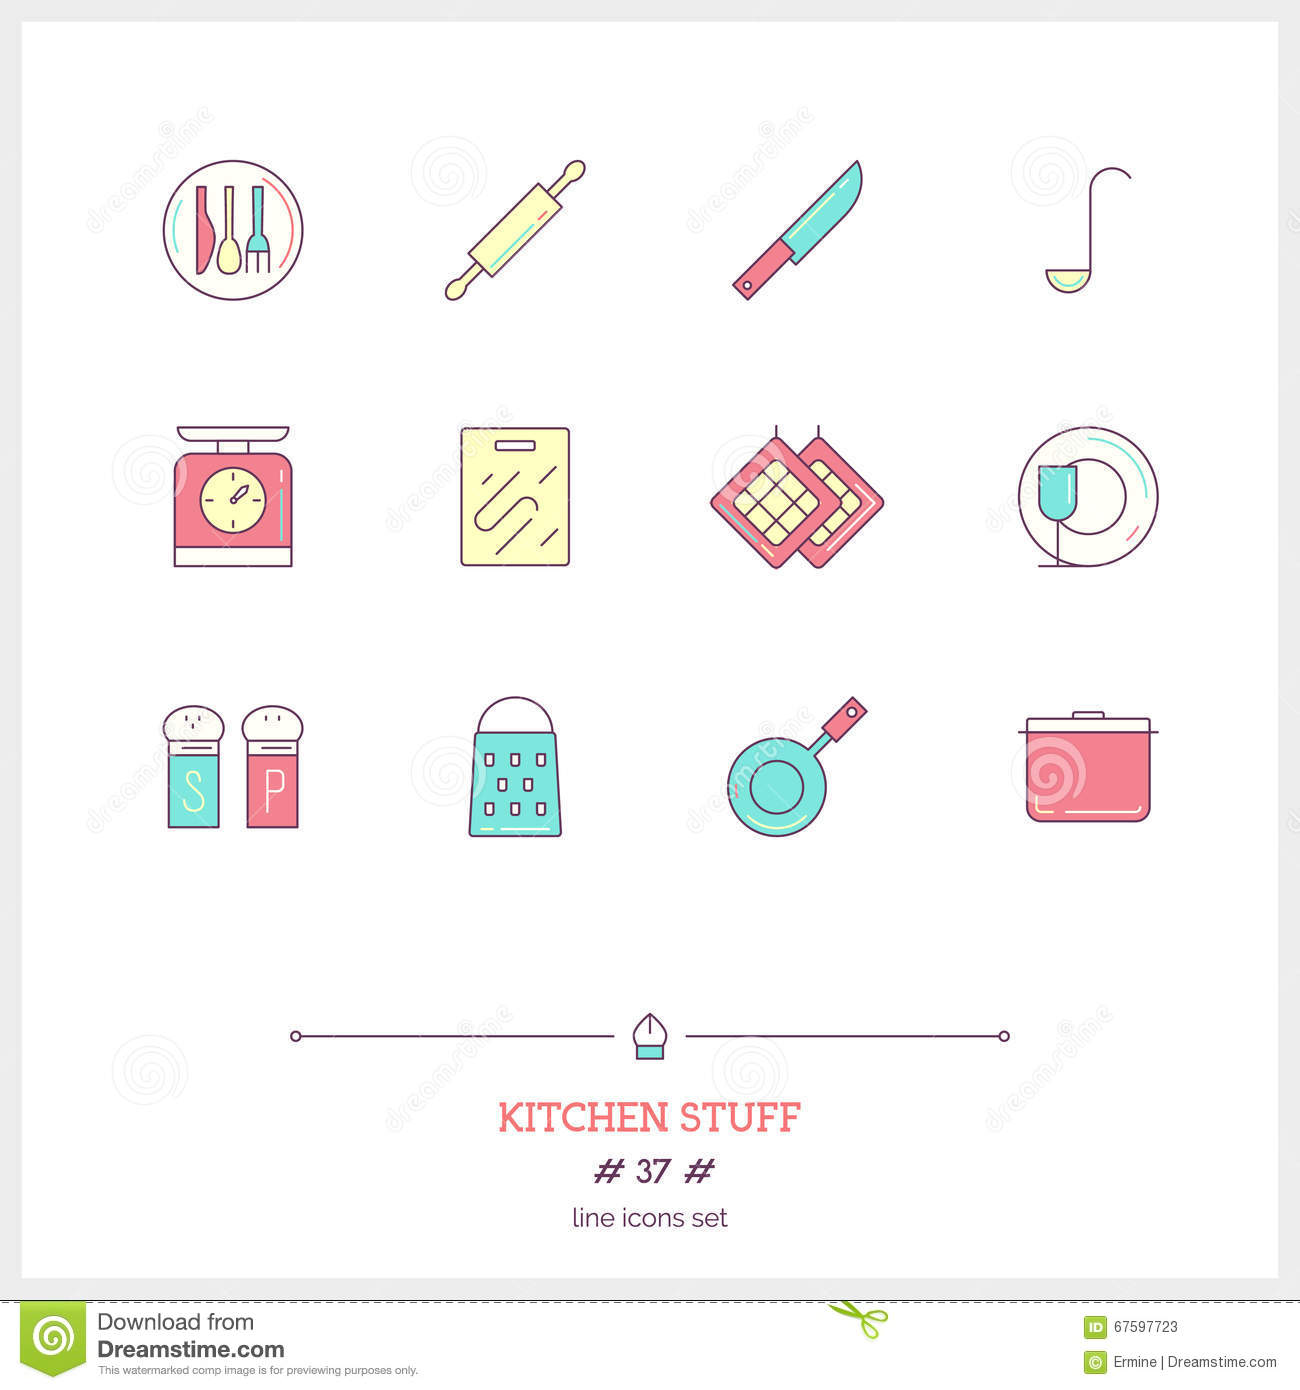 color line icon set of kitchen stuff objects logo icons stock